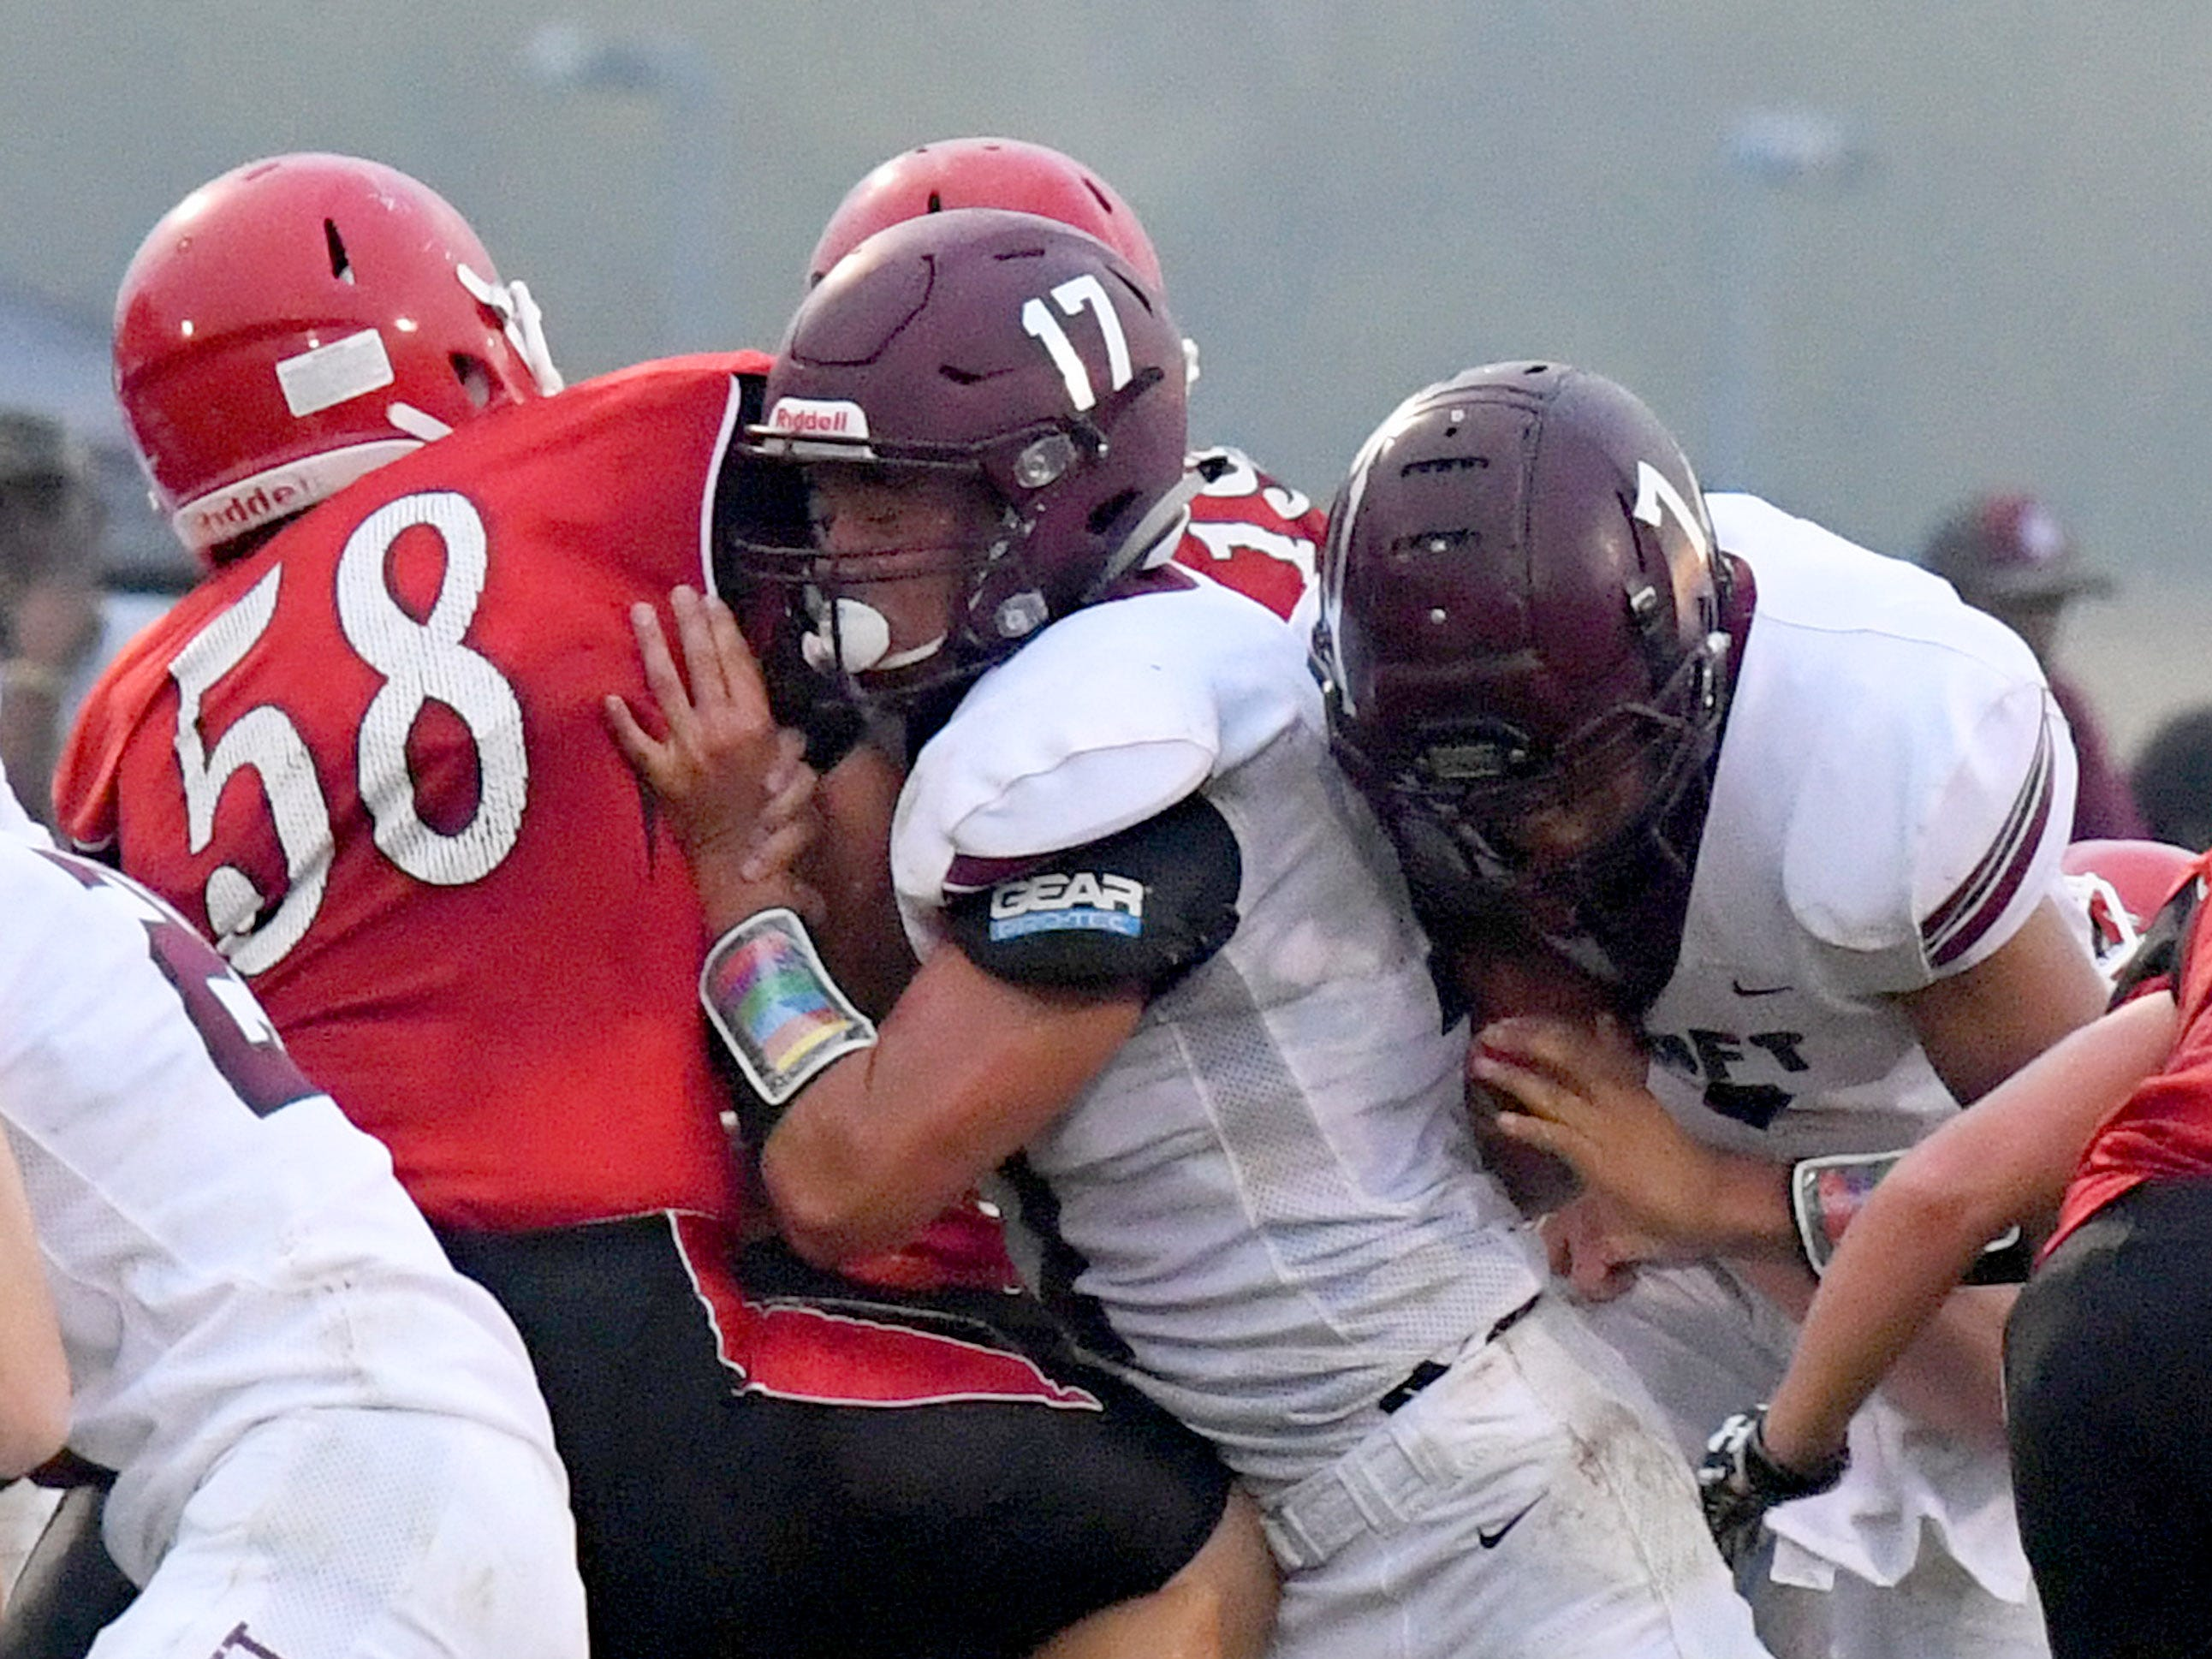 Stuarts Draft's Freddie Watkins (center) has the ball as he tries to squeeze through a hole being opened by teammate Kasey Branch who pushes back Riverheads' Davis Cogar during a football game played in Greenville on Friday, Sept. 7, 2018.